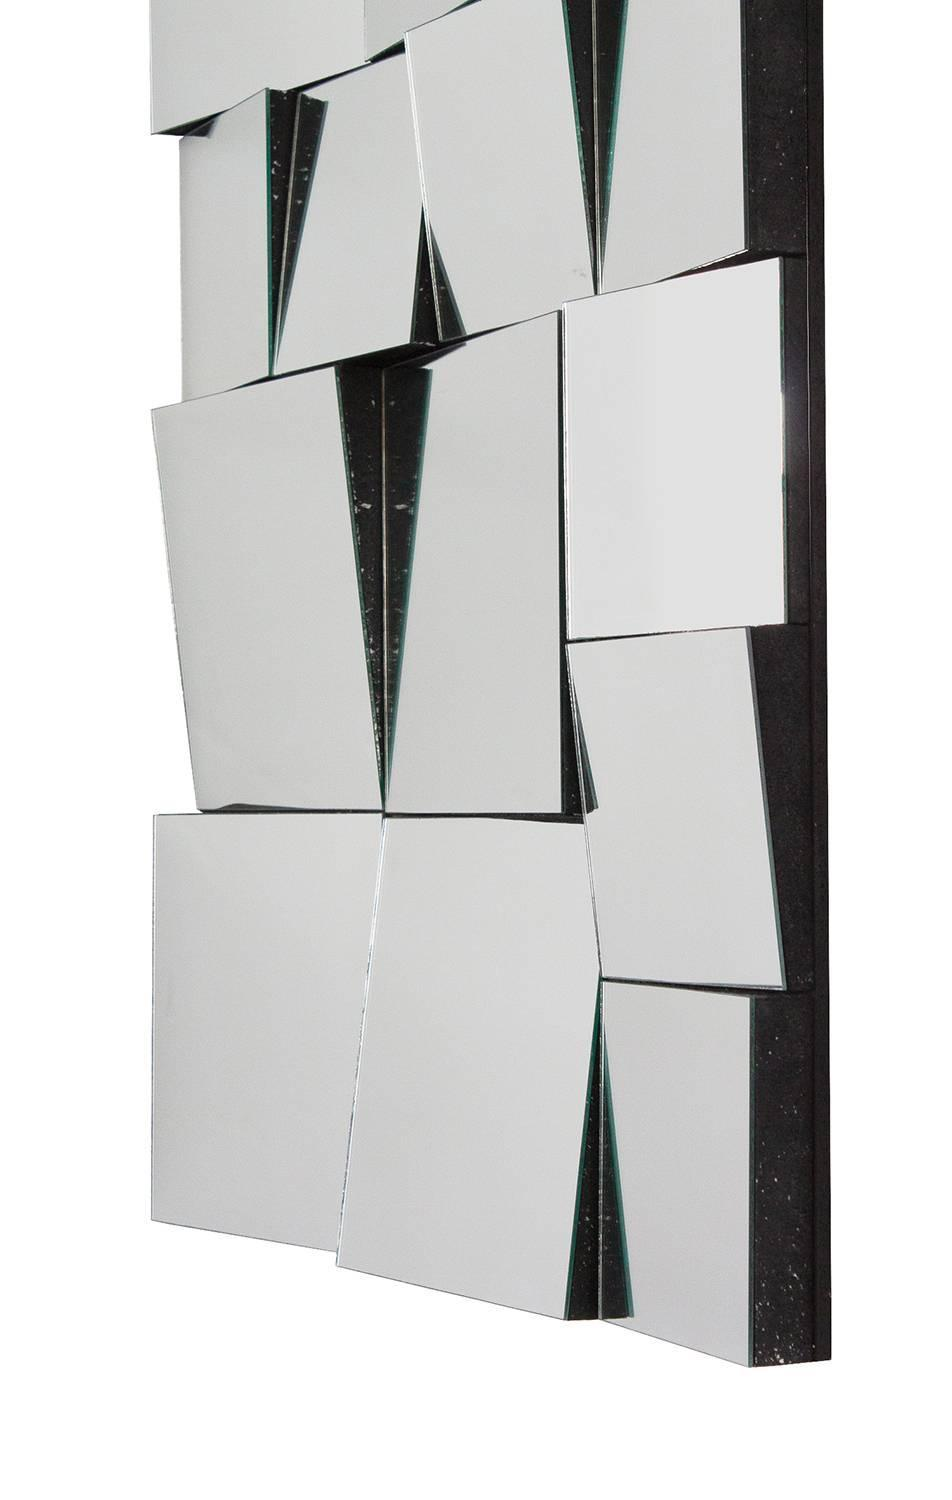 Neal small style slopes wall mirror at 1stdibs for Small wall mirrors